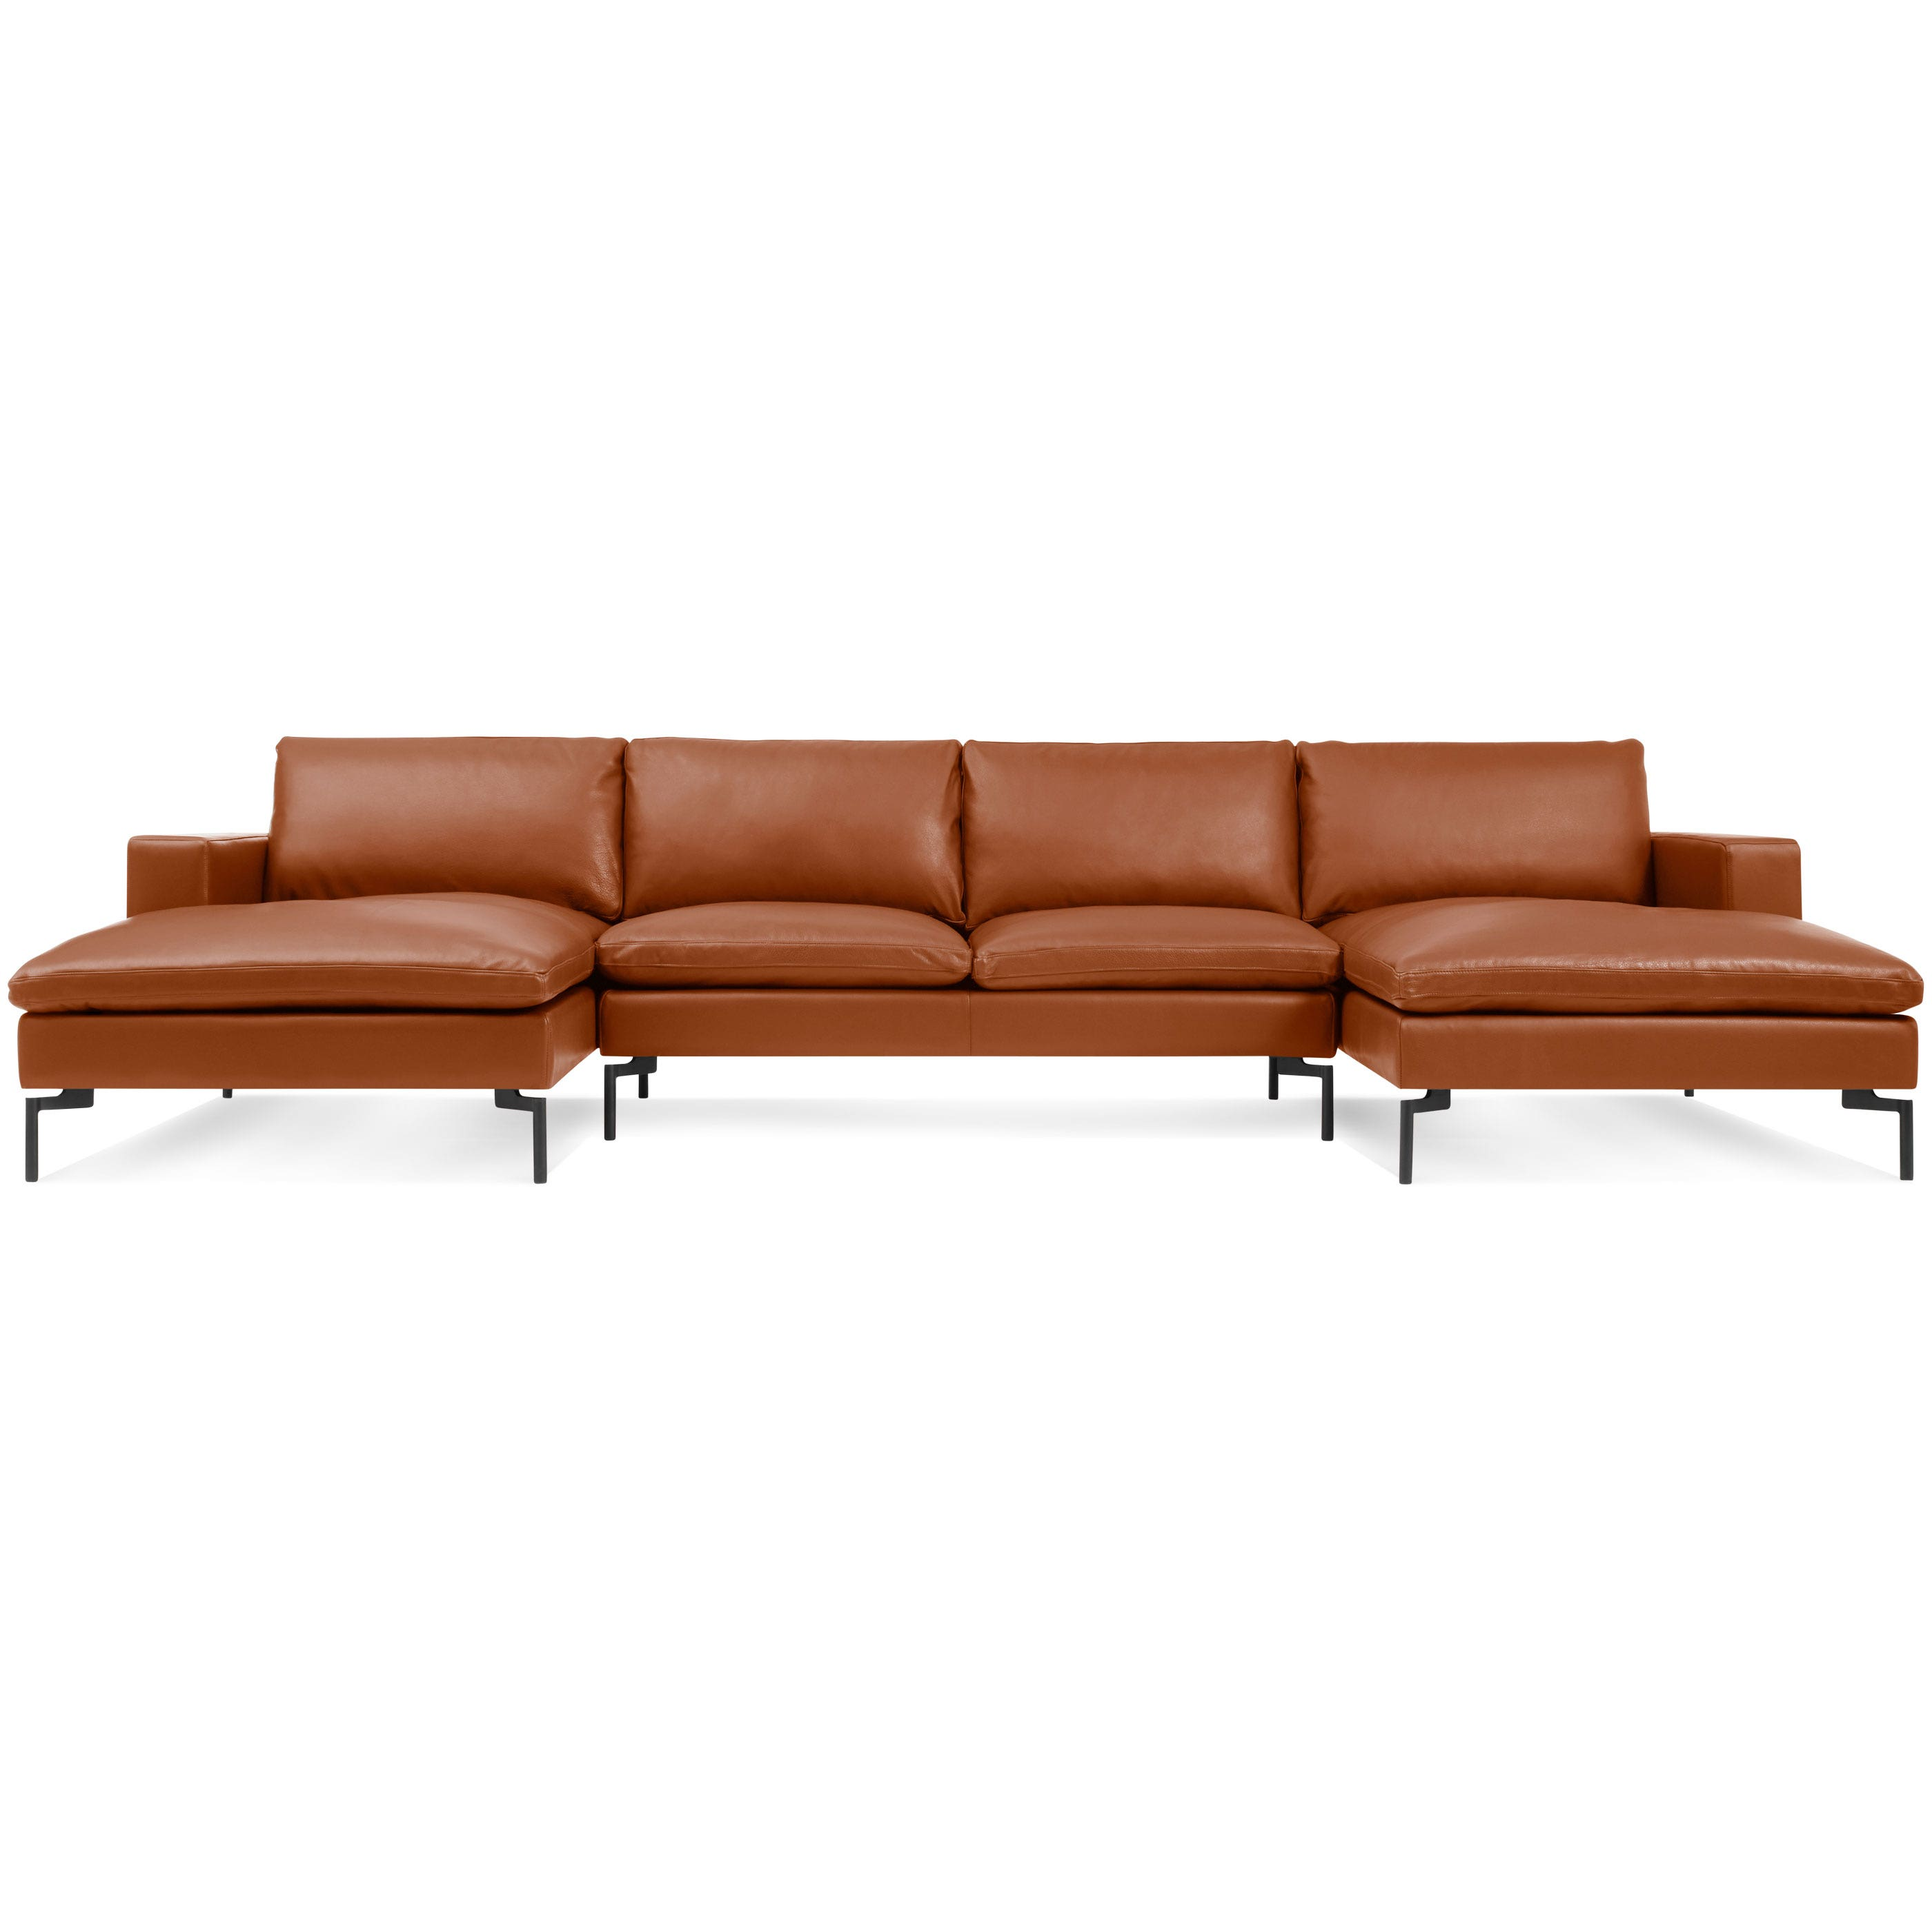 sectional sofa reversible tan poundex couch set pcs leather bonded